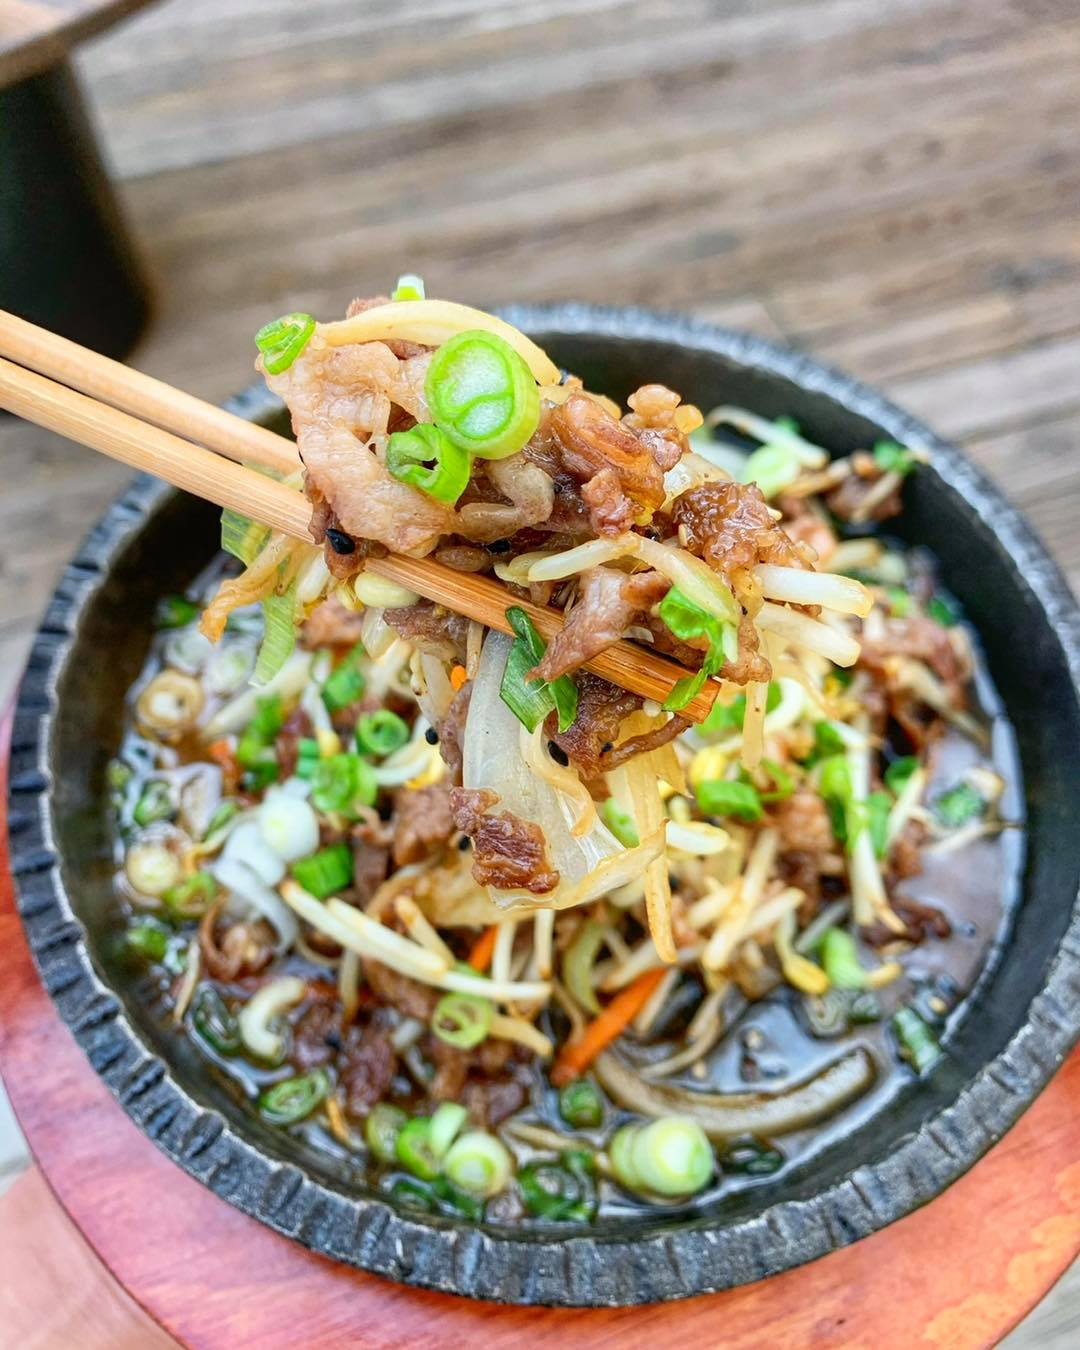 A Korean-style stone bowl filled with shaved meat, beat sprouts, sauce, green onions and more veggies. A hand holding chopsticks is lifting a bite out of the bowl.